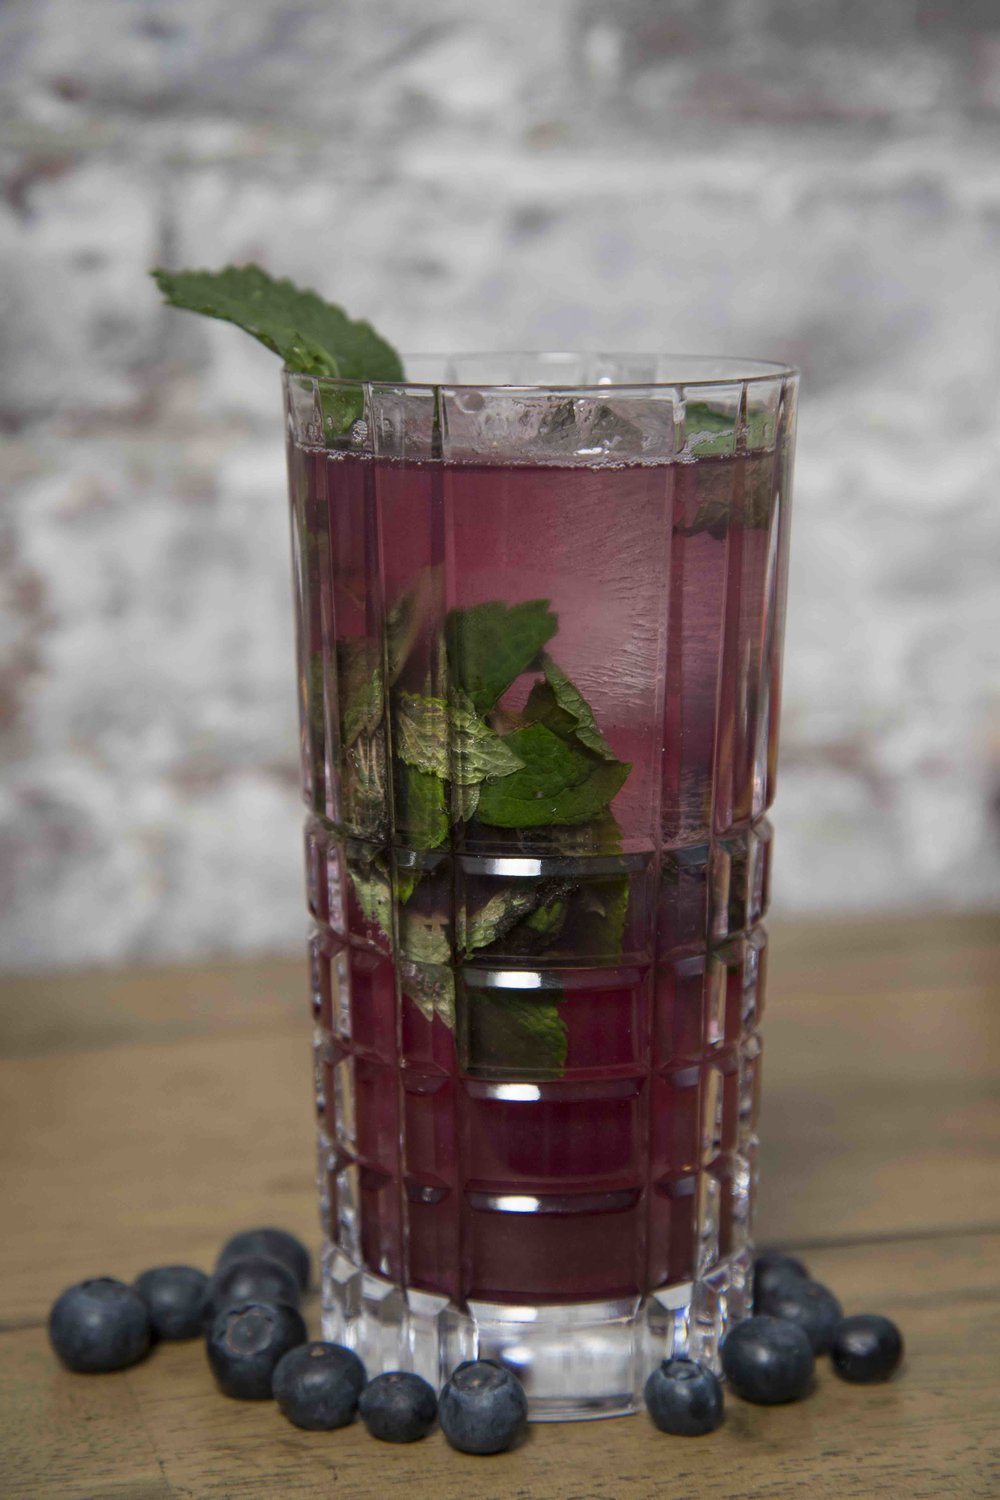 Blueberry Mojito 1.0 Blueberry Finn 2.0 oz white rum 1.0 oz mint infused simple syrup 1.0 oz lime juice 2.0 oz soda water (Recipe by Jeff Turok)